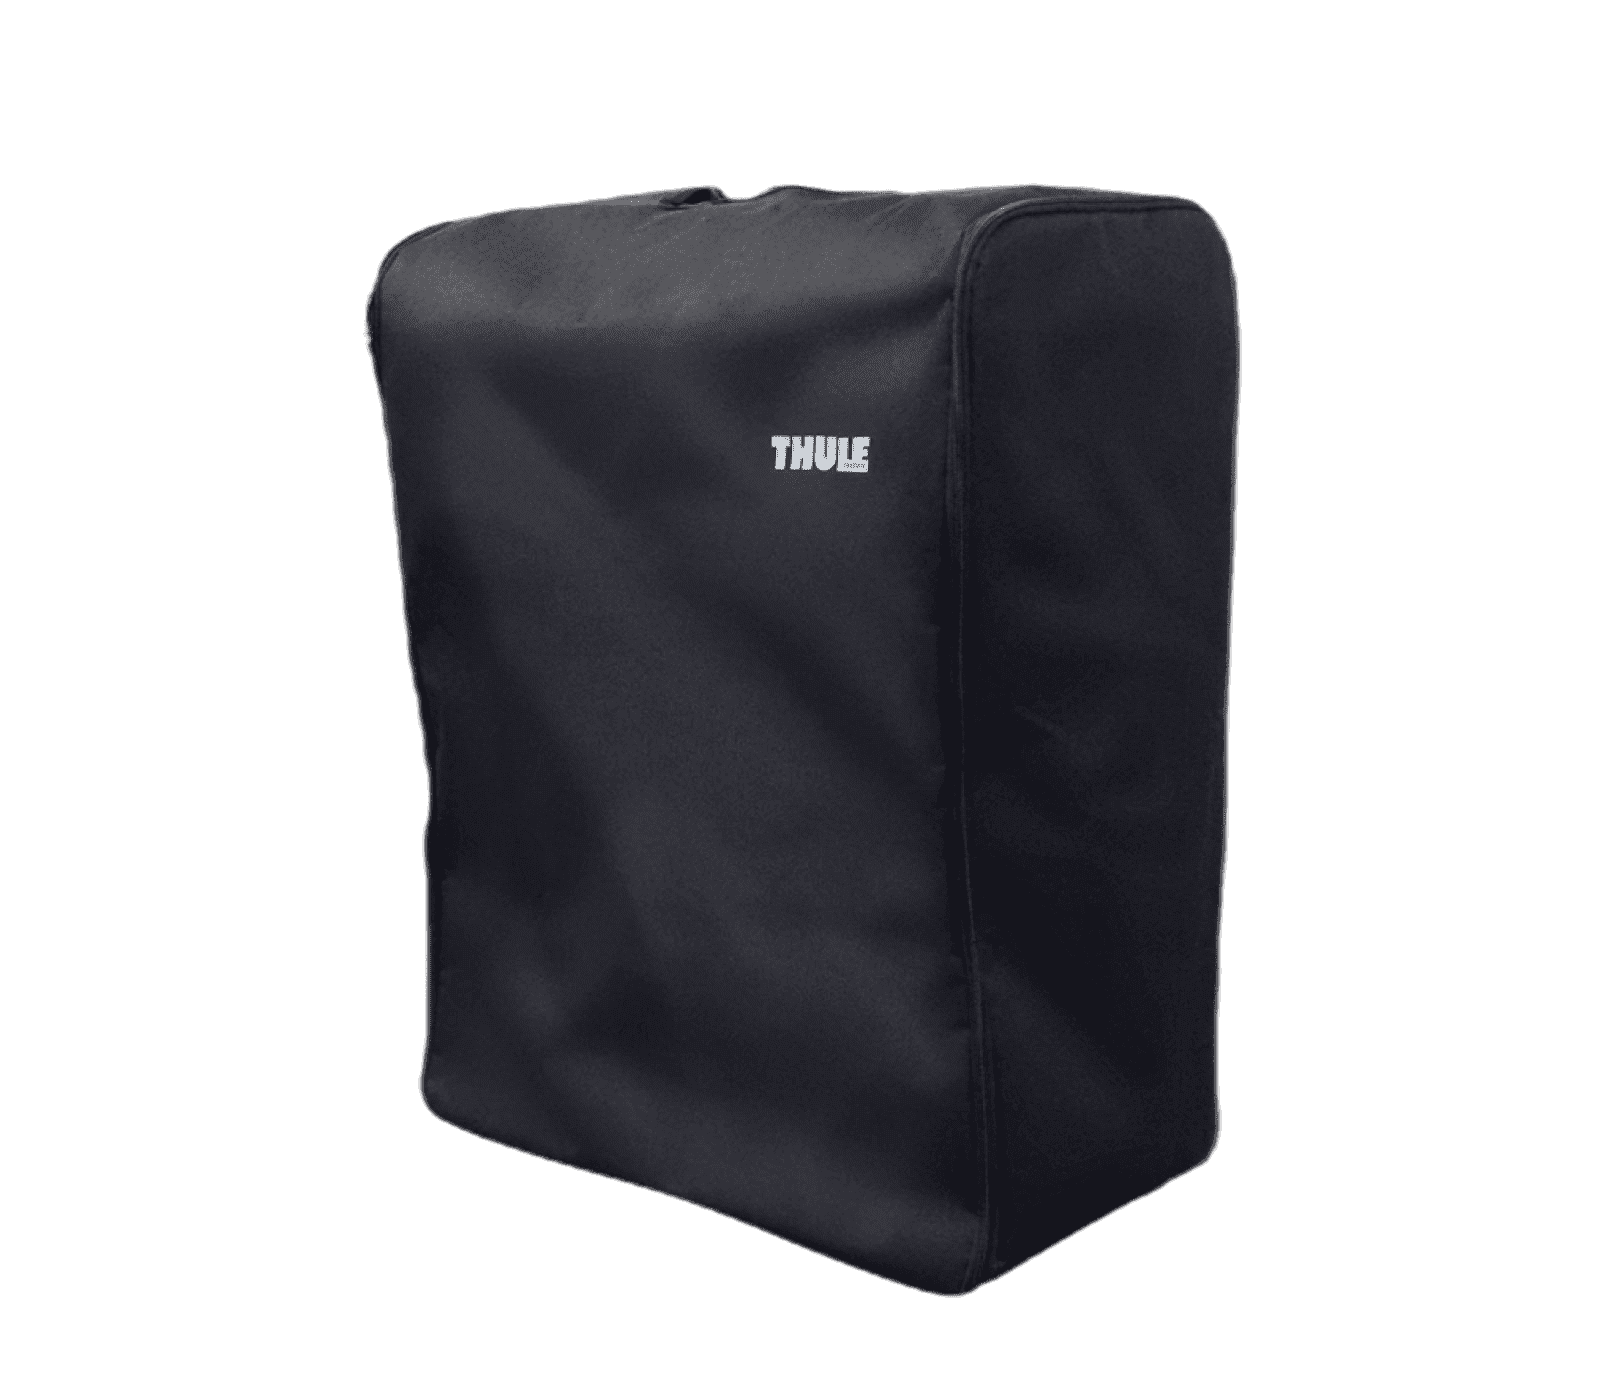 Easyfold carrying bag